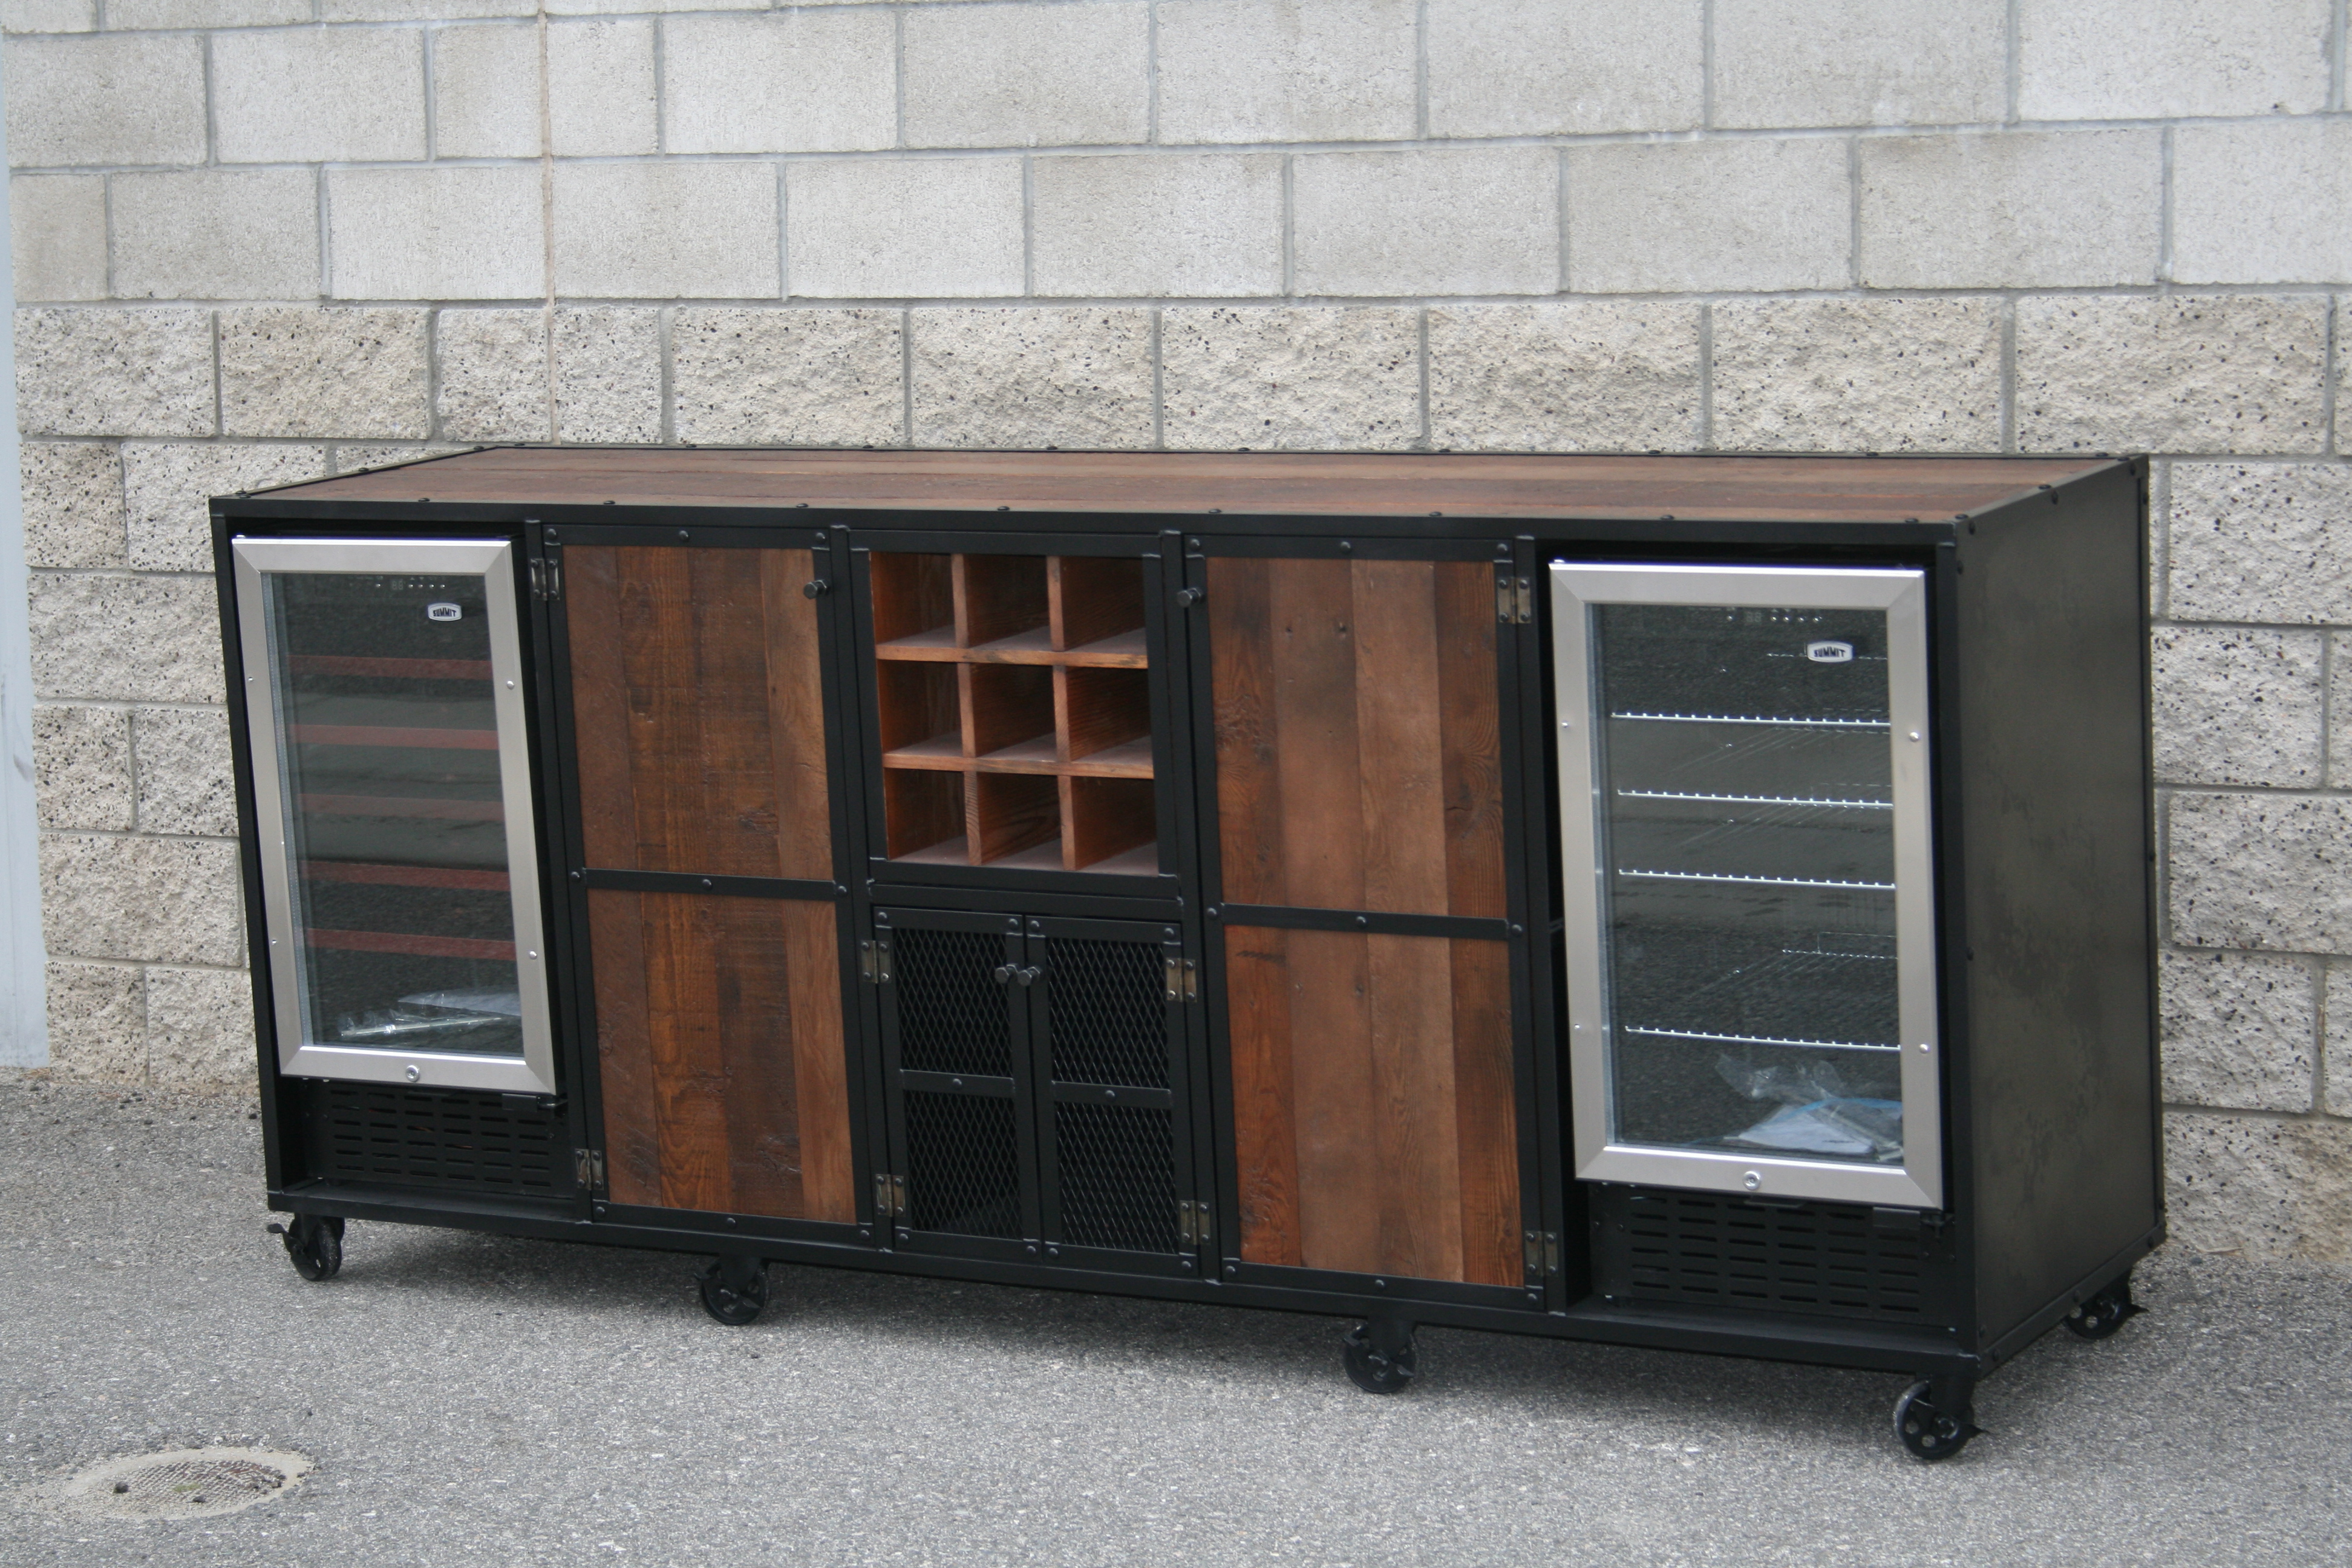 Combine 9 Industrial Furniture Refrigerator Liquor  : IMG8156 from www.combine9.com size 3888 x 2592 jpeg 4710kB